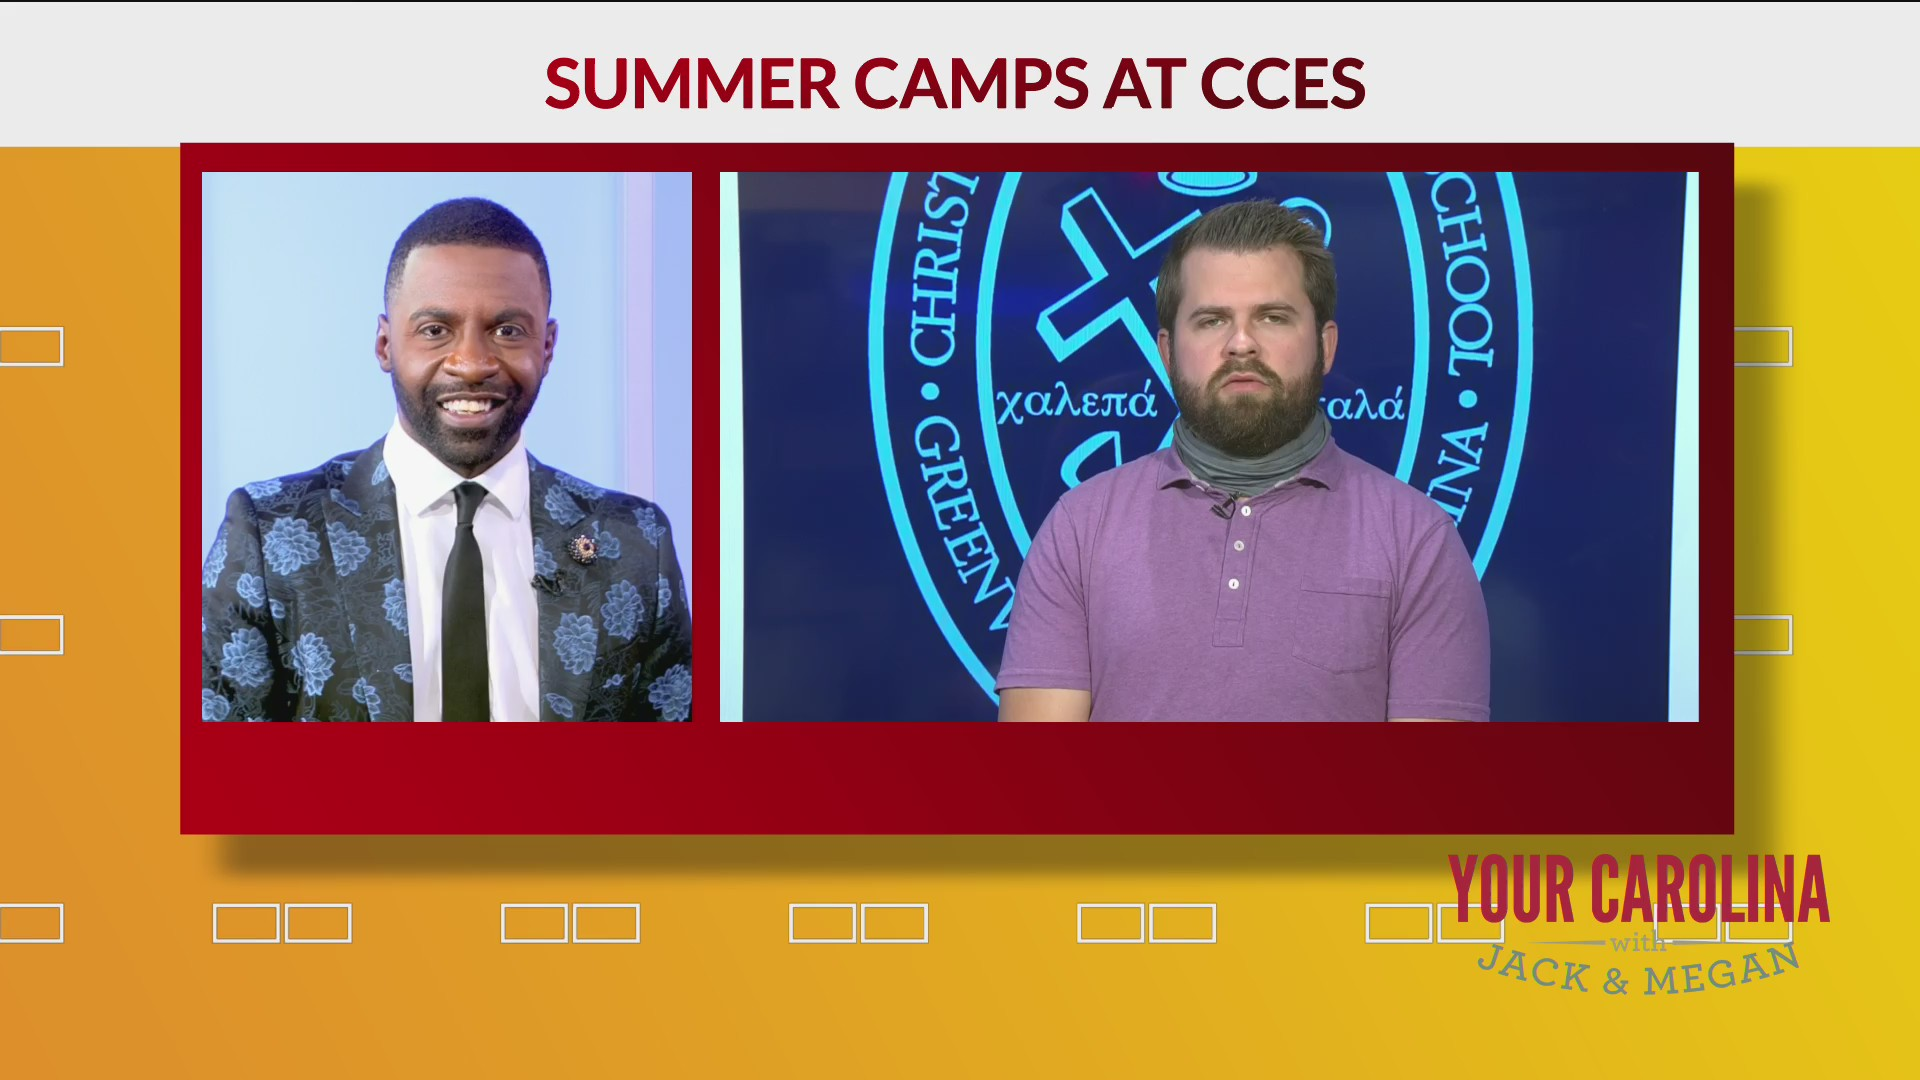 Summer Camps At CCES